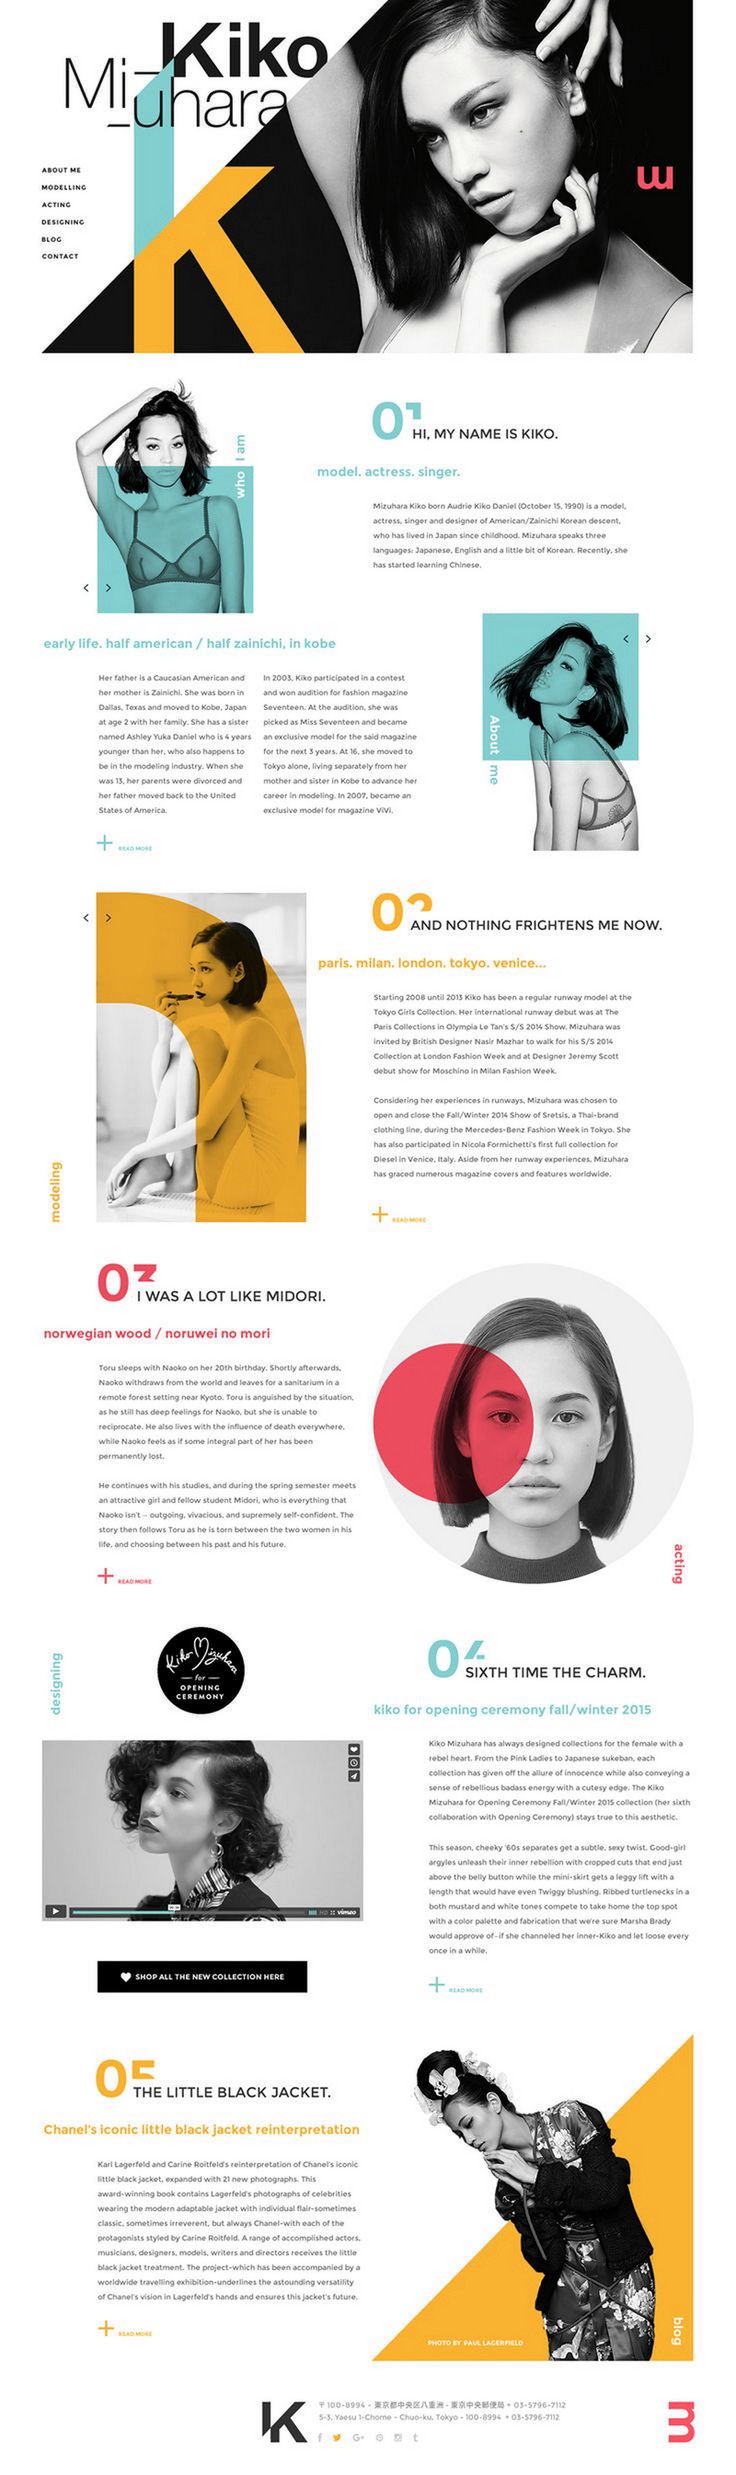 145 Awesome Magazine Layout Designs https://www.designlisticle.com/magazine-layout/